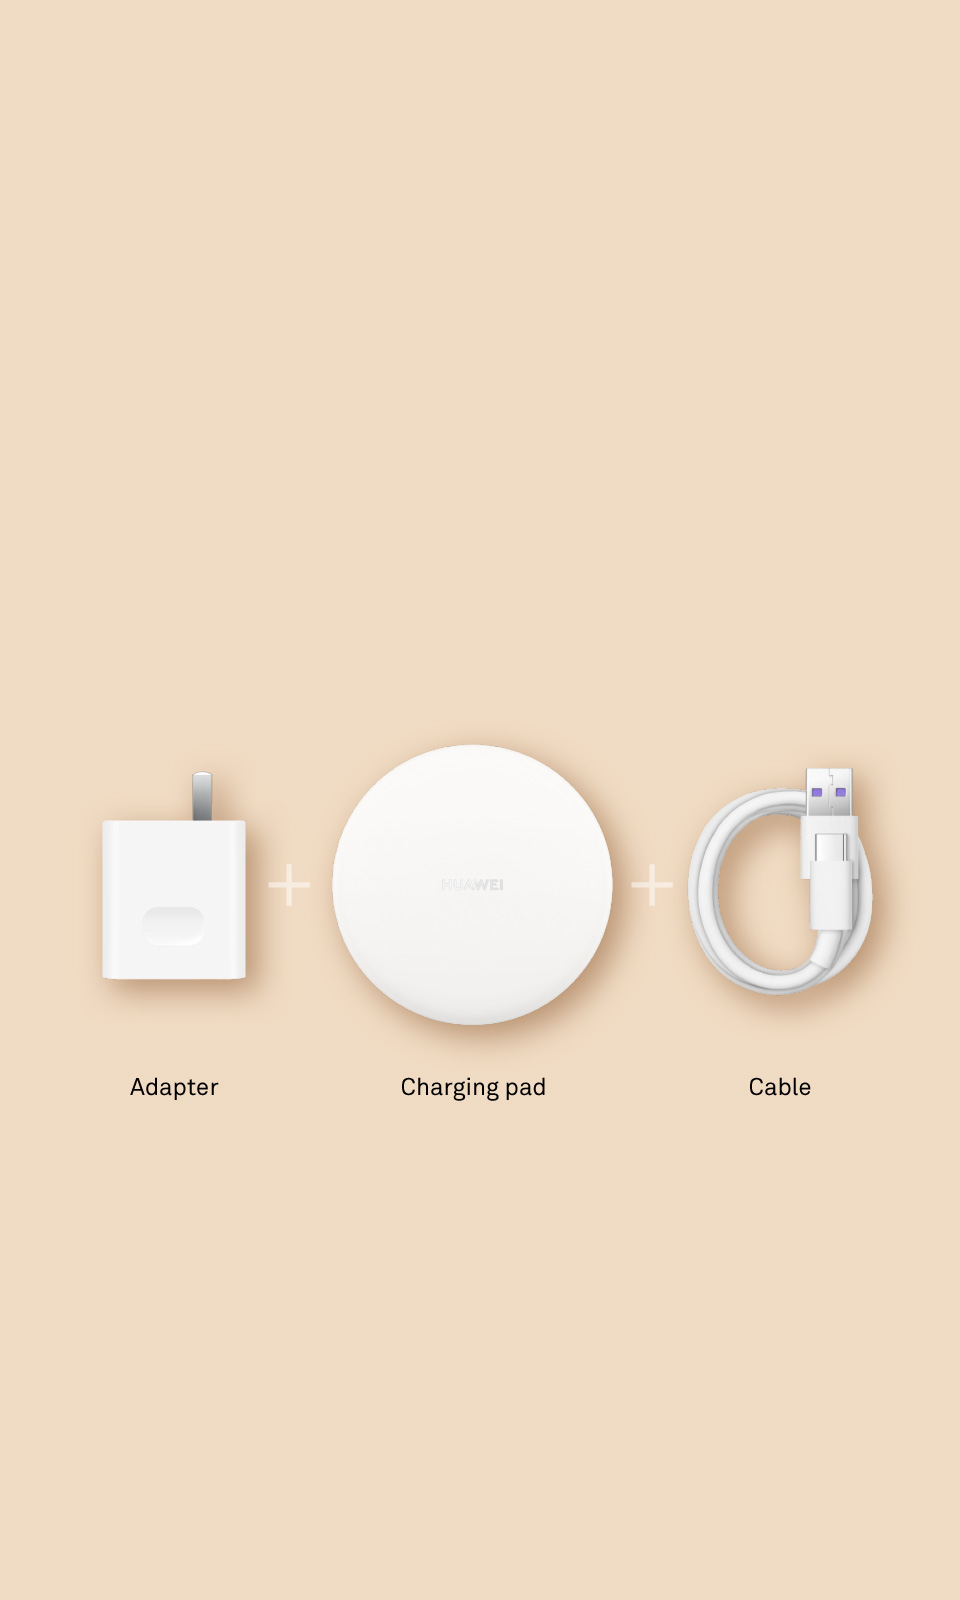 HUAWEI Wireless Charger, Qi standard, universal wireless